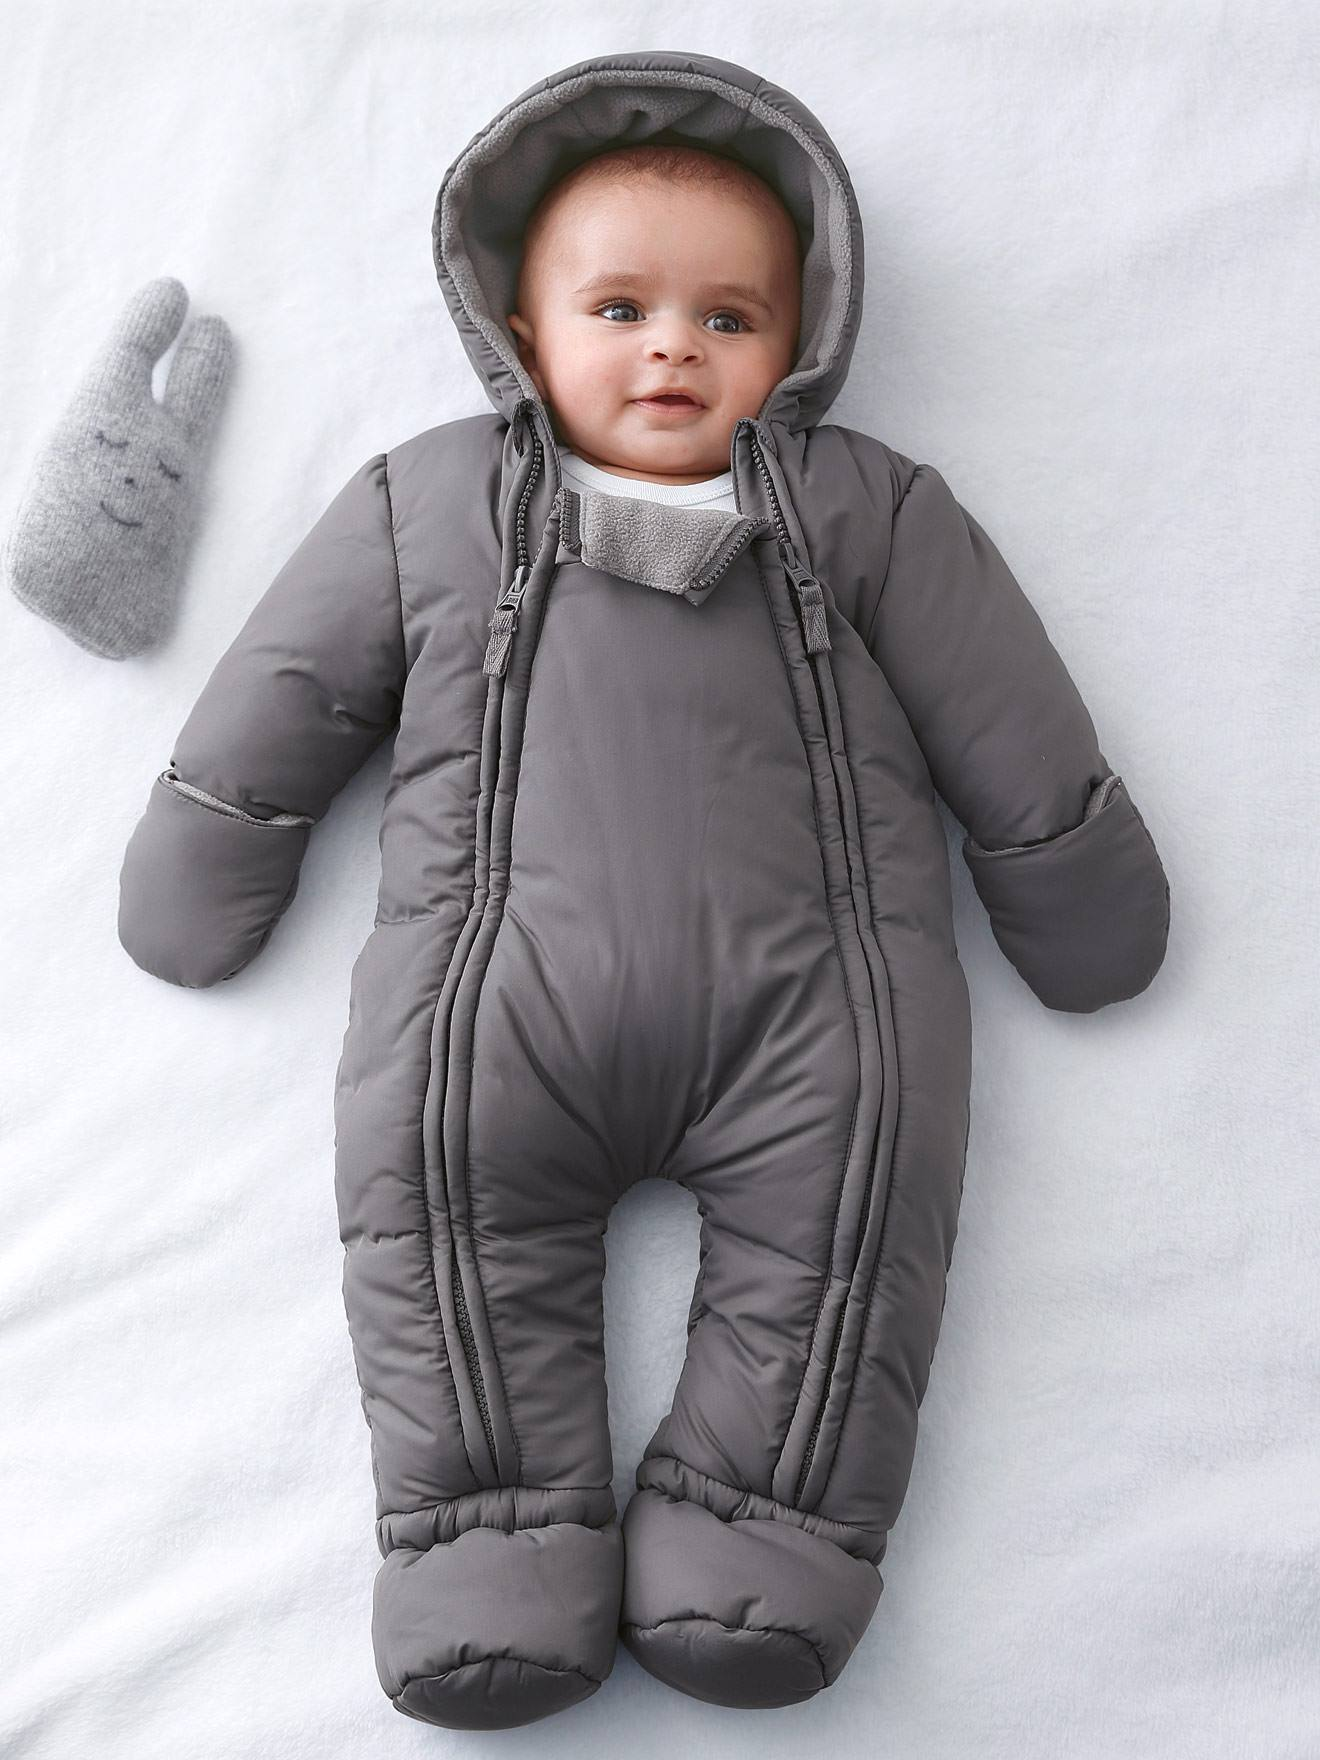 Shop for baby snow suit online at Target. Free shipping on purchases over $35 and 5% Off W/ REDcard · Same Day Store Pick-Up · Free Shipping $35+ · Same Day Store Pick-Up.